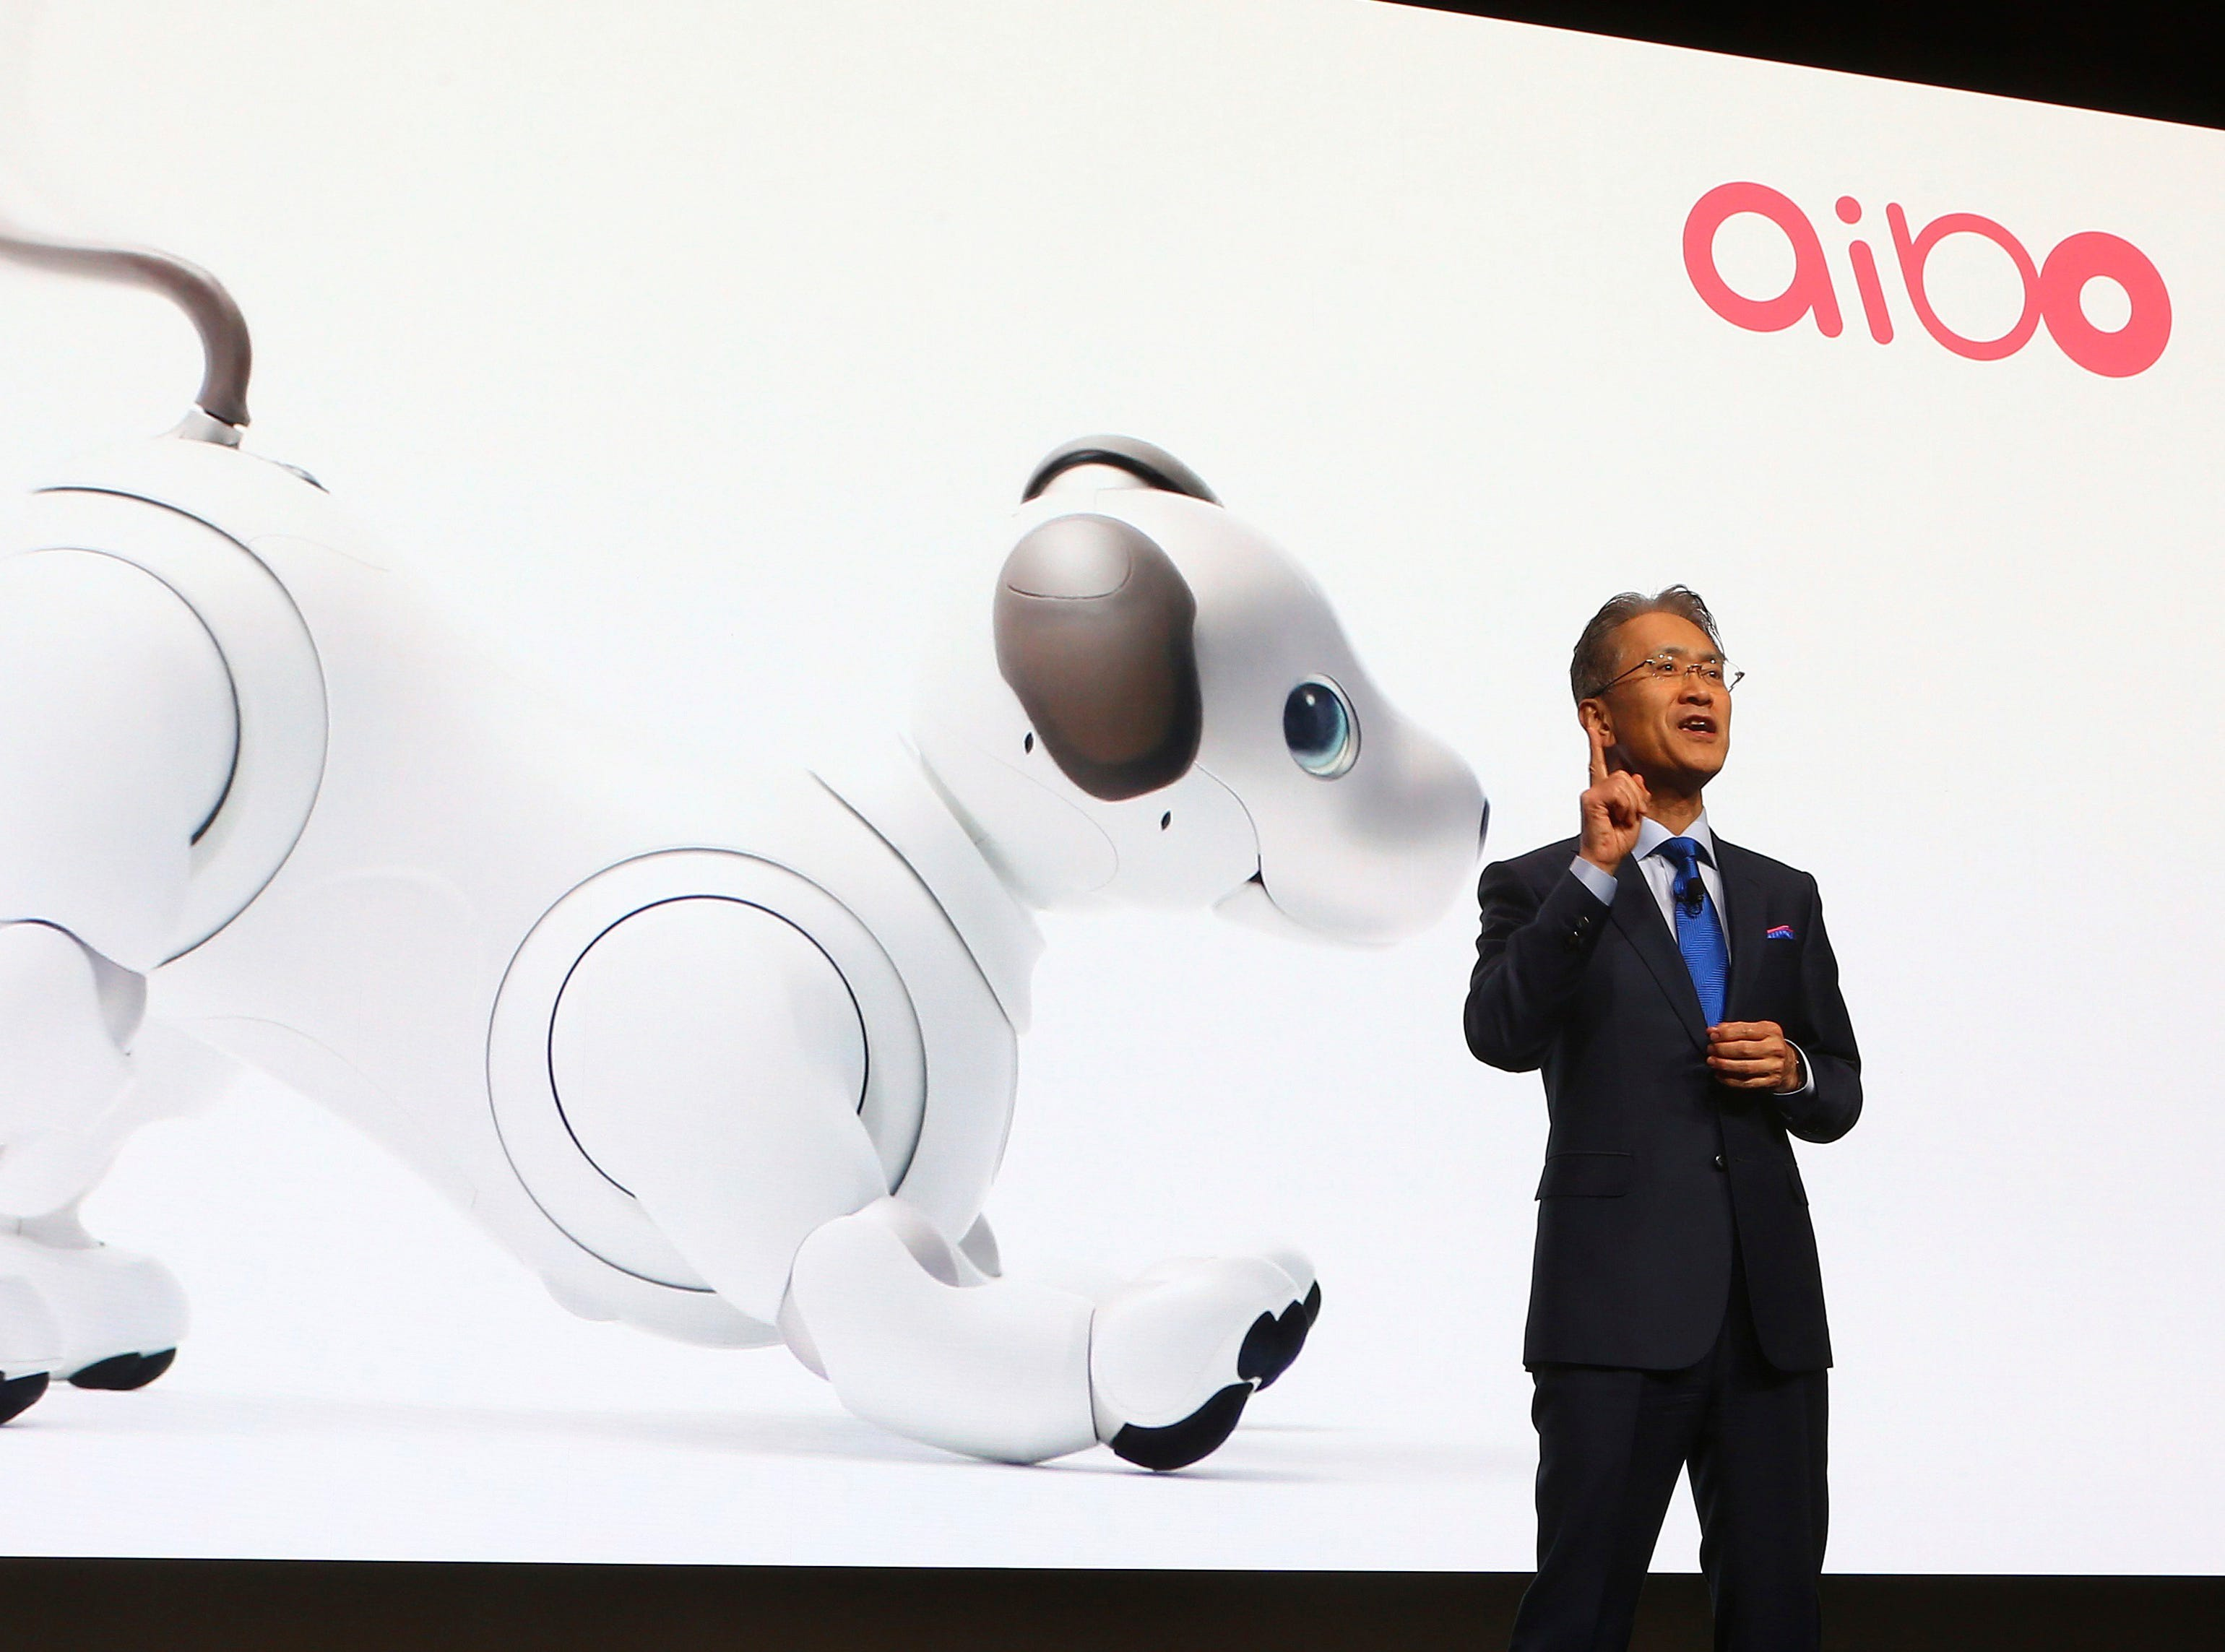 Sony President and CEO Kenichiro Yoshida speaks at the Sony news conference at CES International with the Sony robotic dog Aibo projected behind him Monday, Jan. 7, 2019, in Las Vegas.